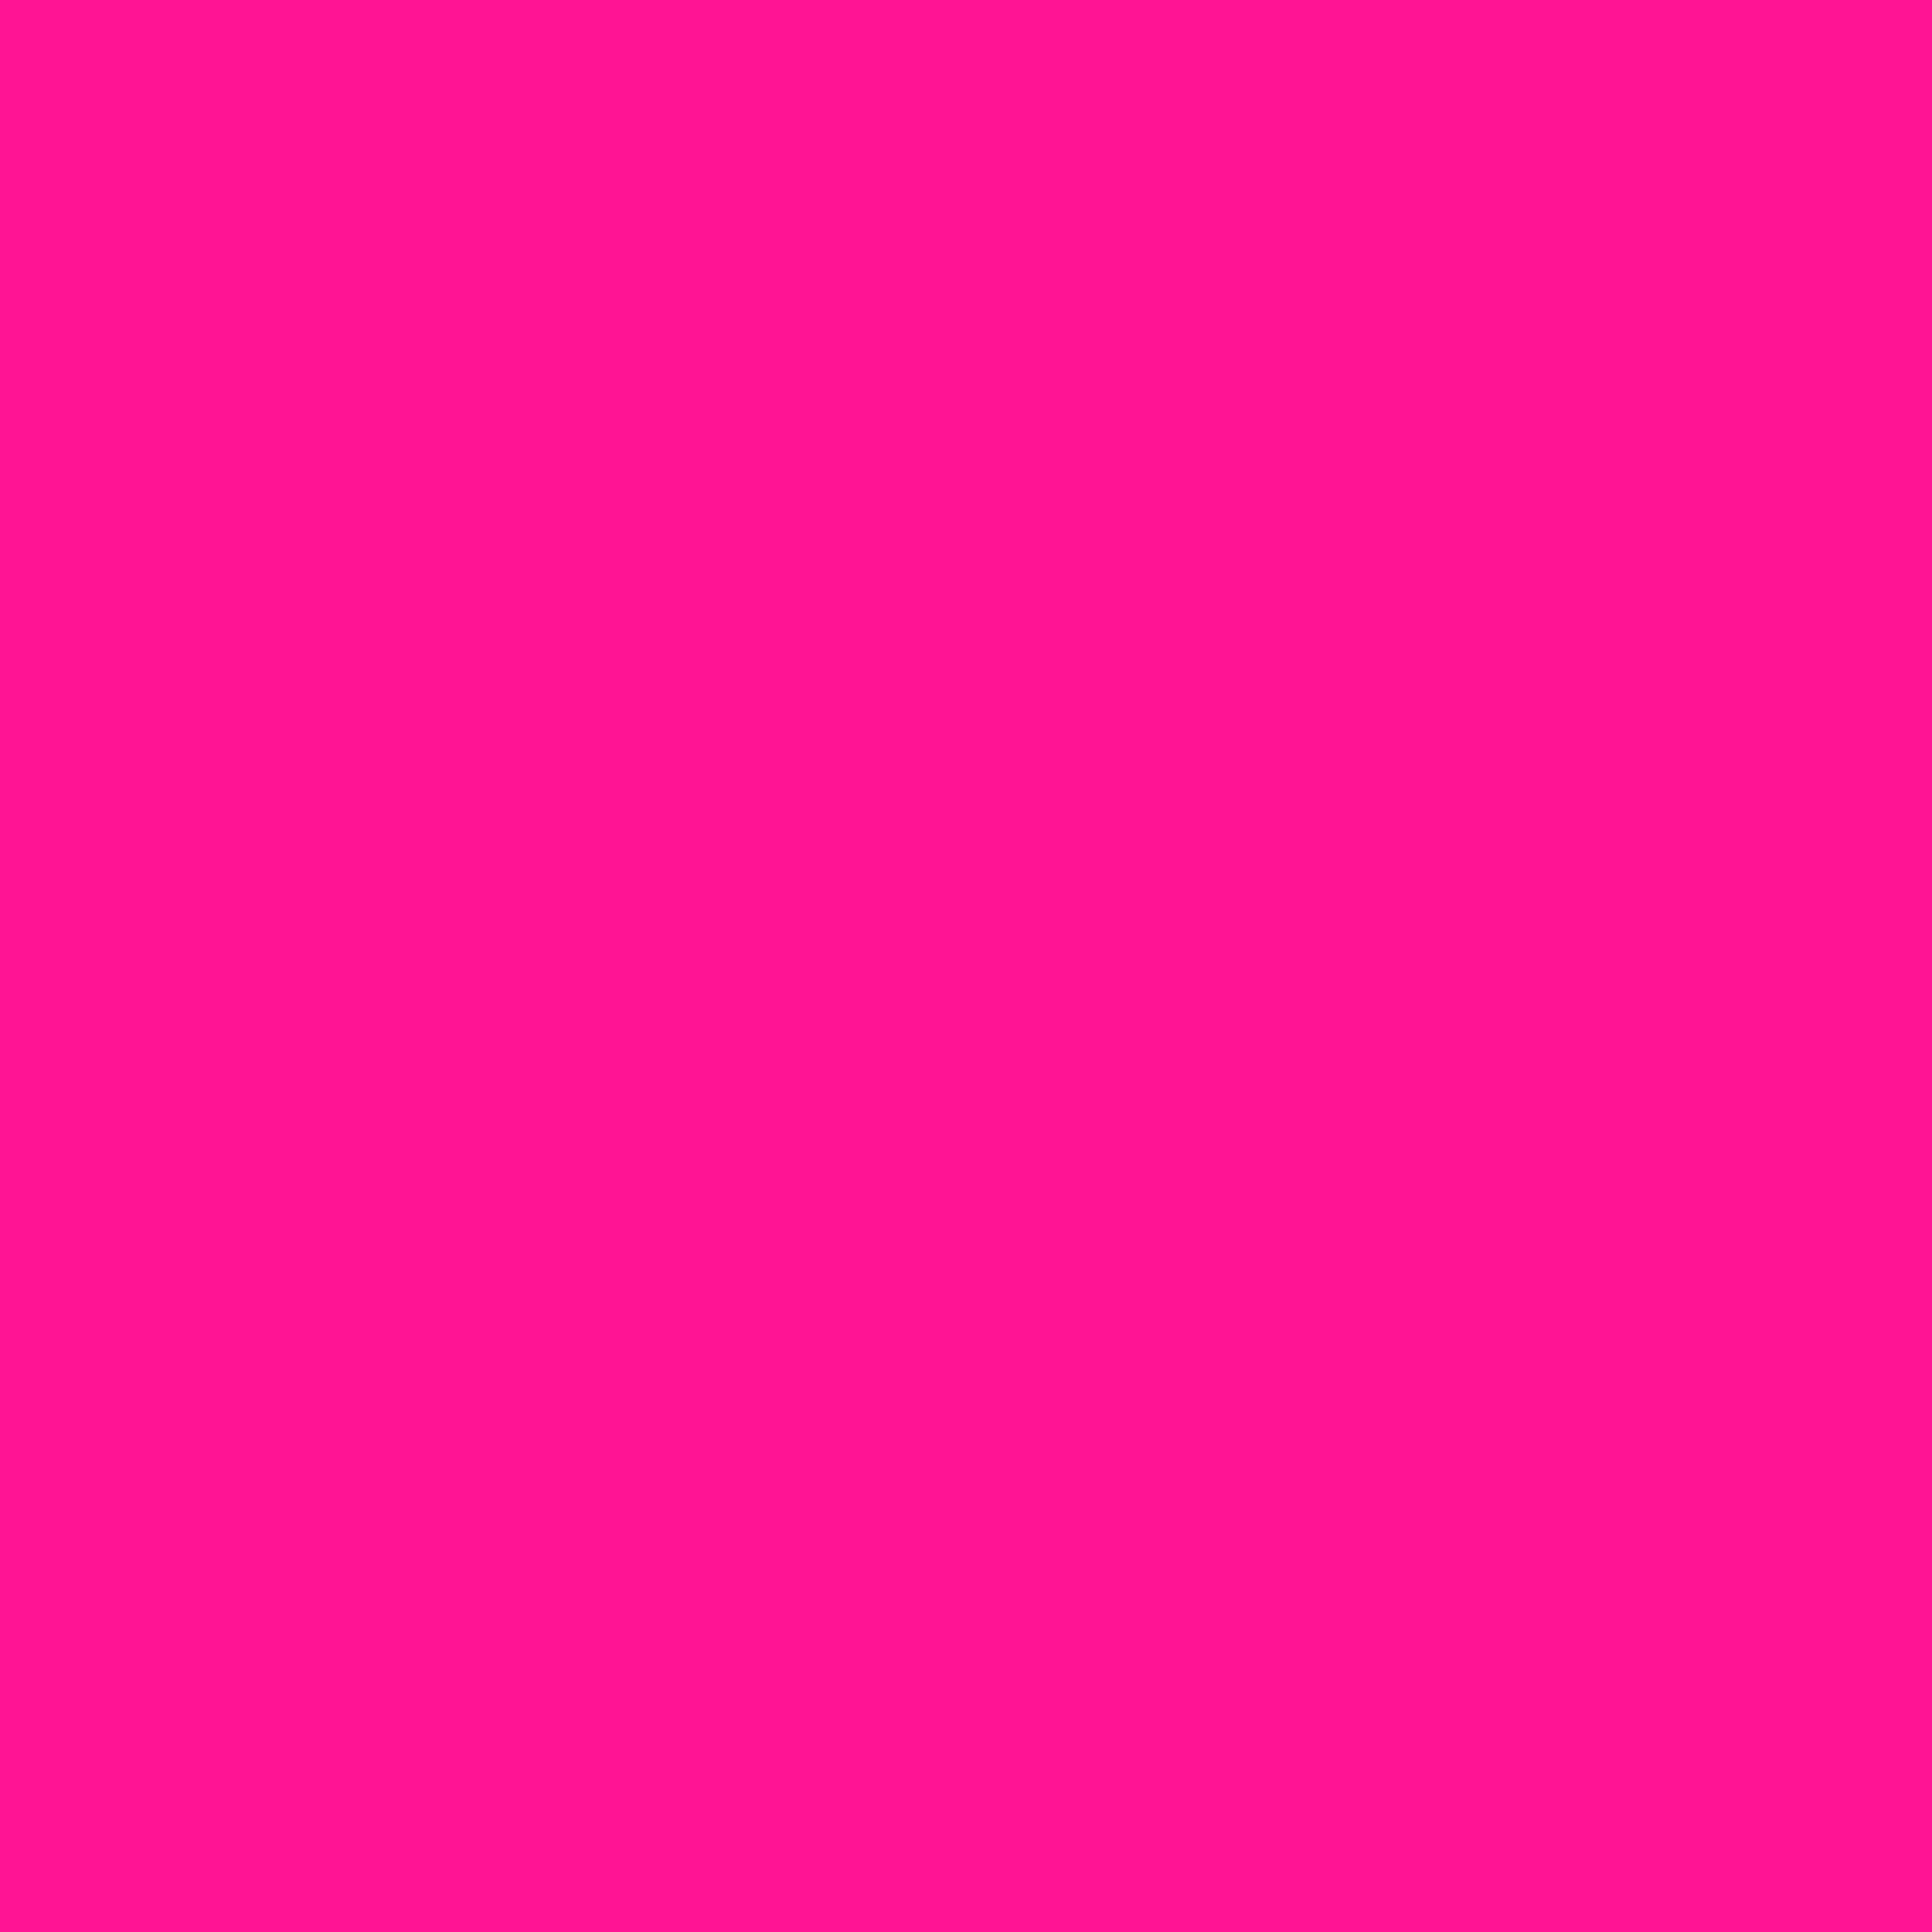 2048x2048 Fluorescent Pink Solid Color Background